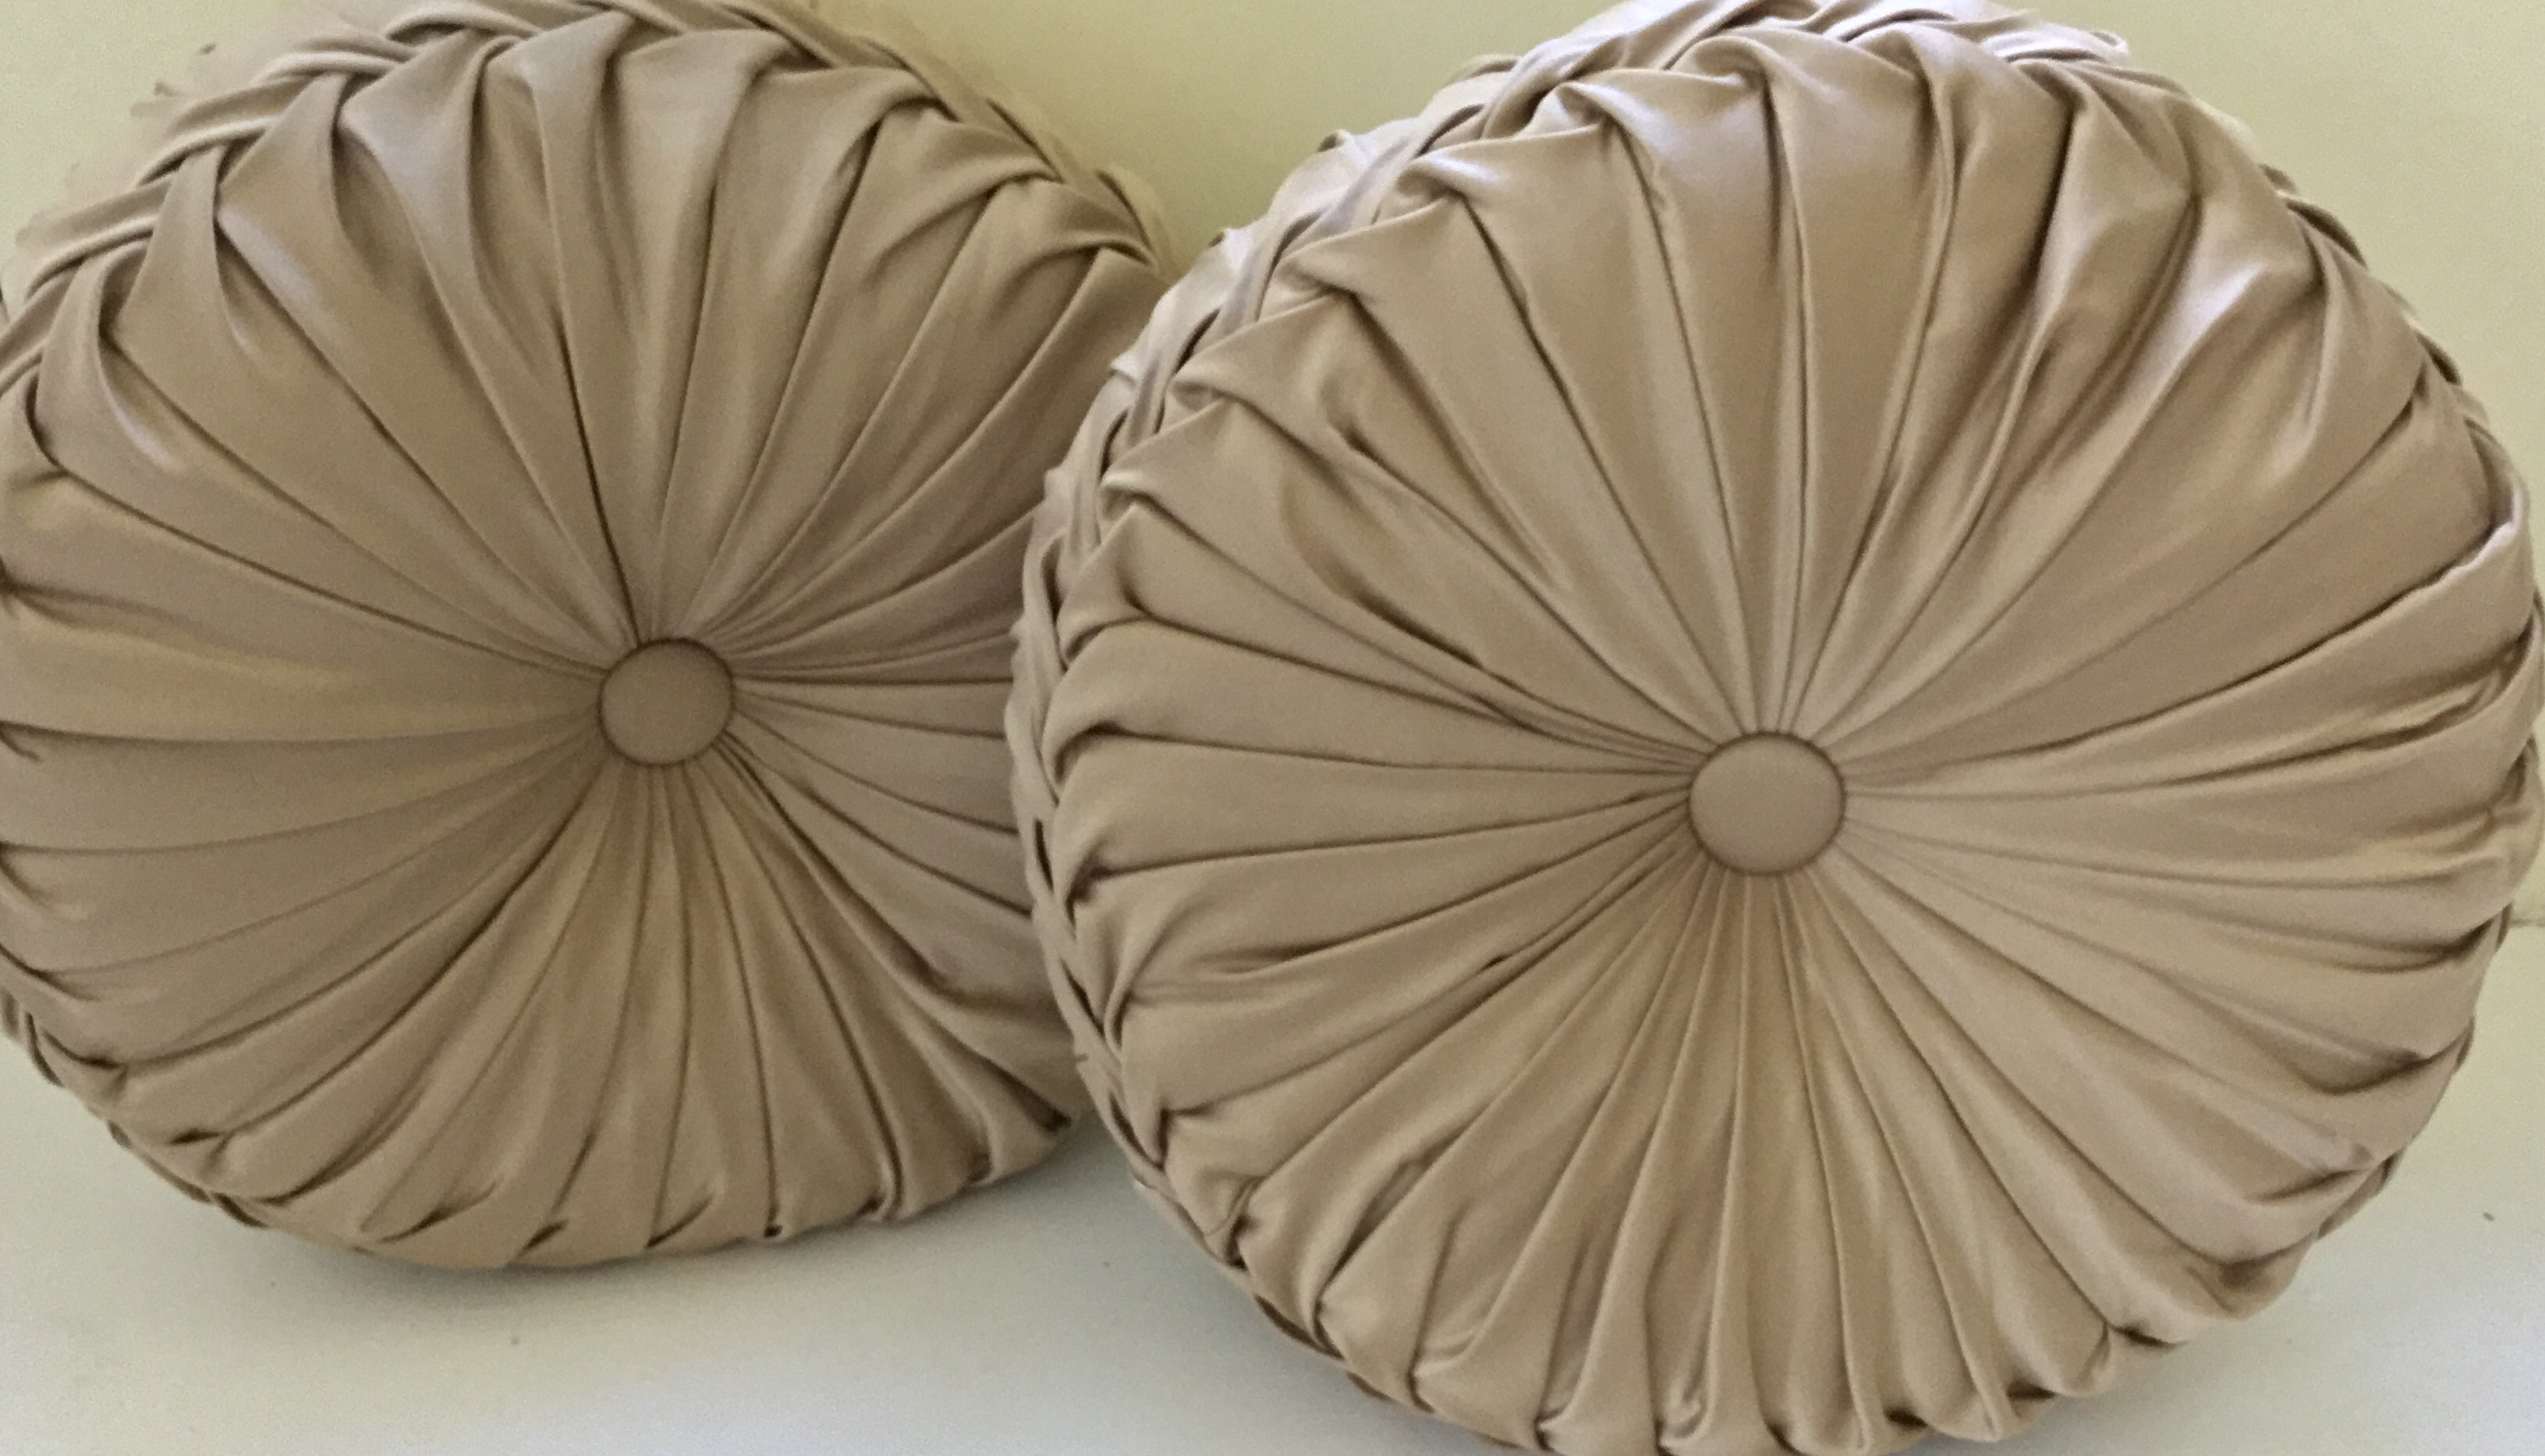 Tan Round Pleated Pillows, Set of 2